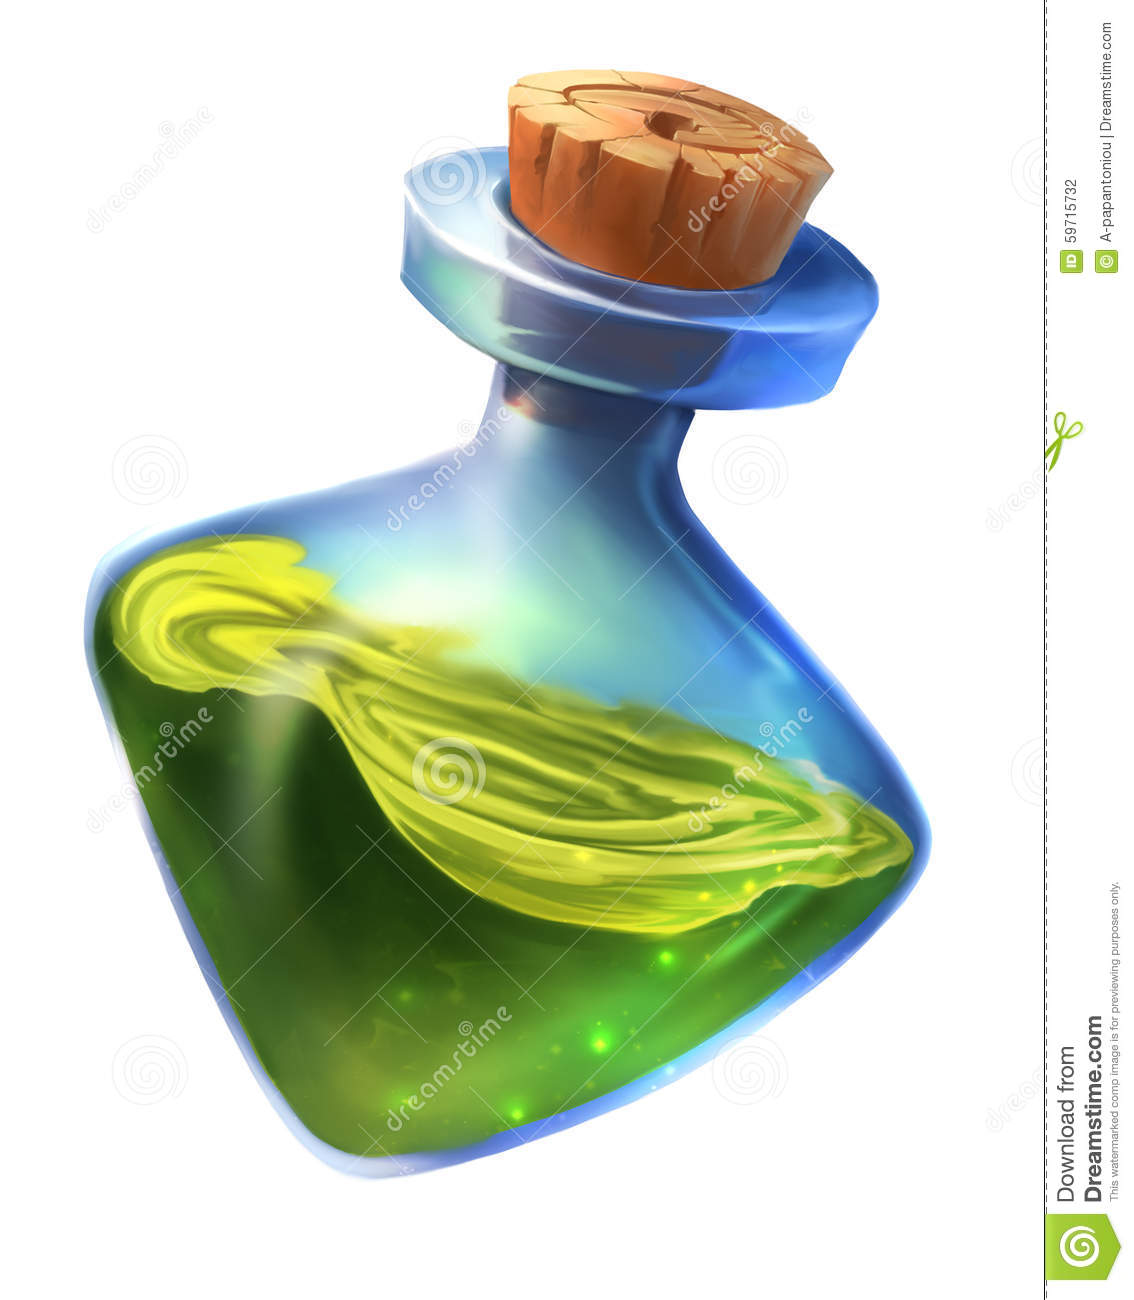 Painting of a magic potion bottle. Ideal for use as a UI icon or game ...